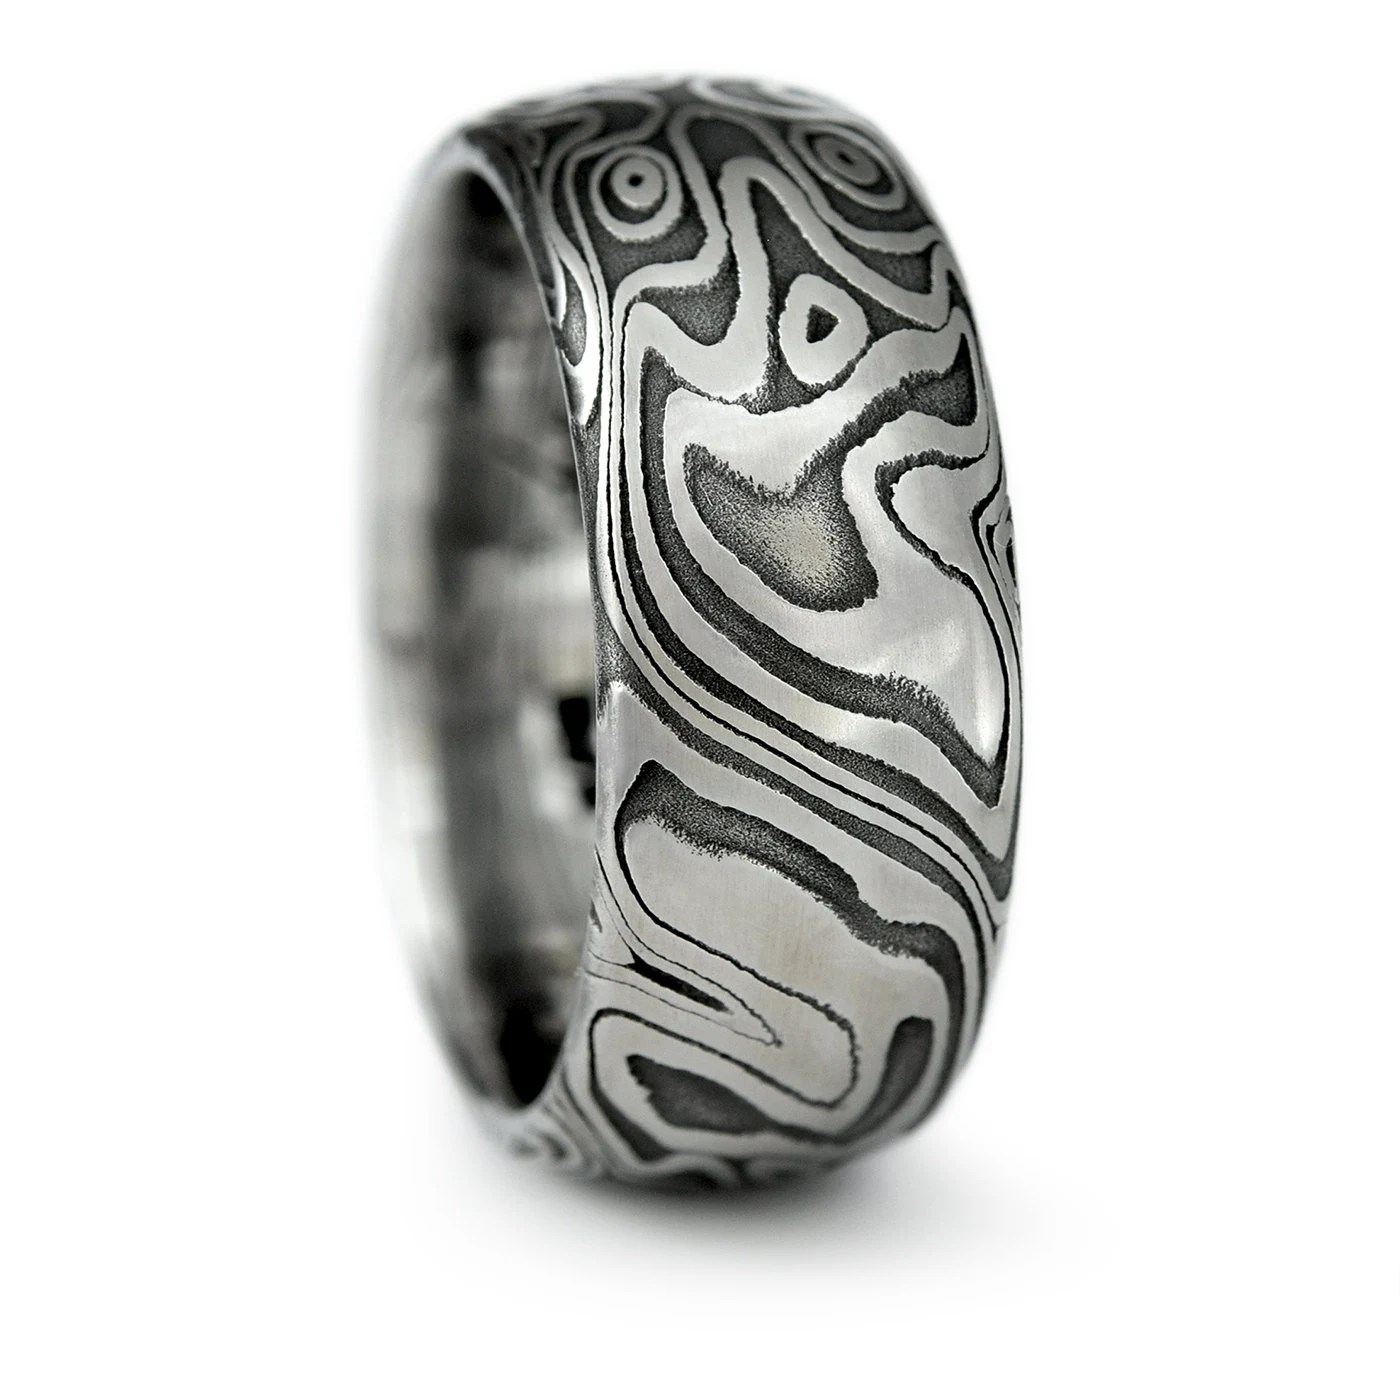 damascus steel ring with white gold damascus wedding band Damascus Steel Domed Wedding Band with Four Pointed Swirling Star Pattern with Dark Fire Patina Bold Masculine Handmade Wedding Ring